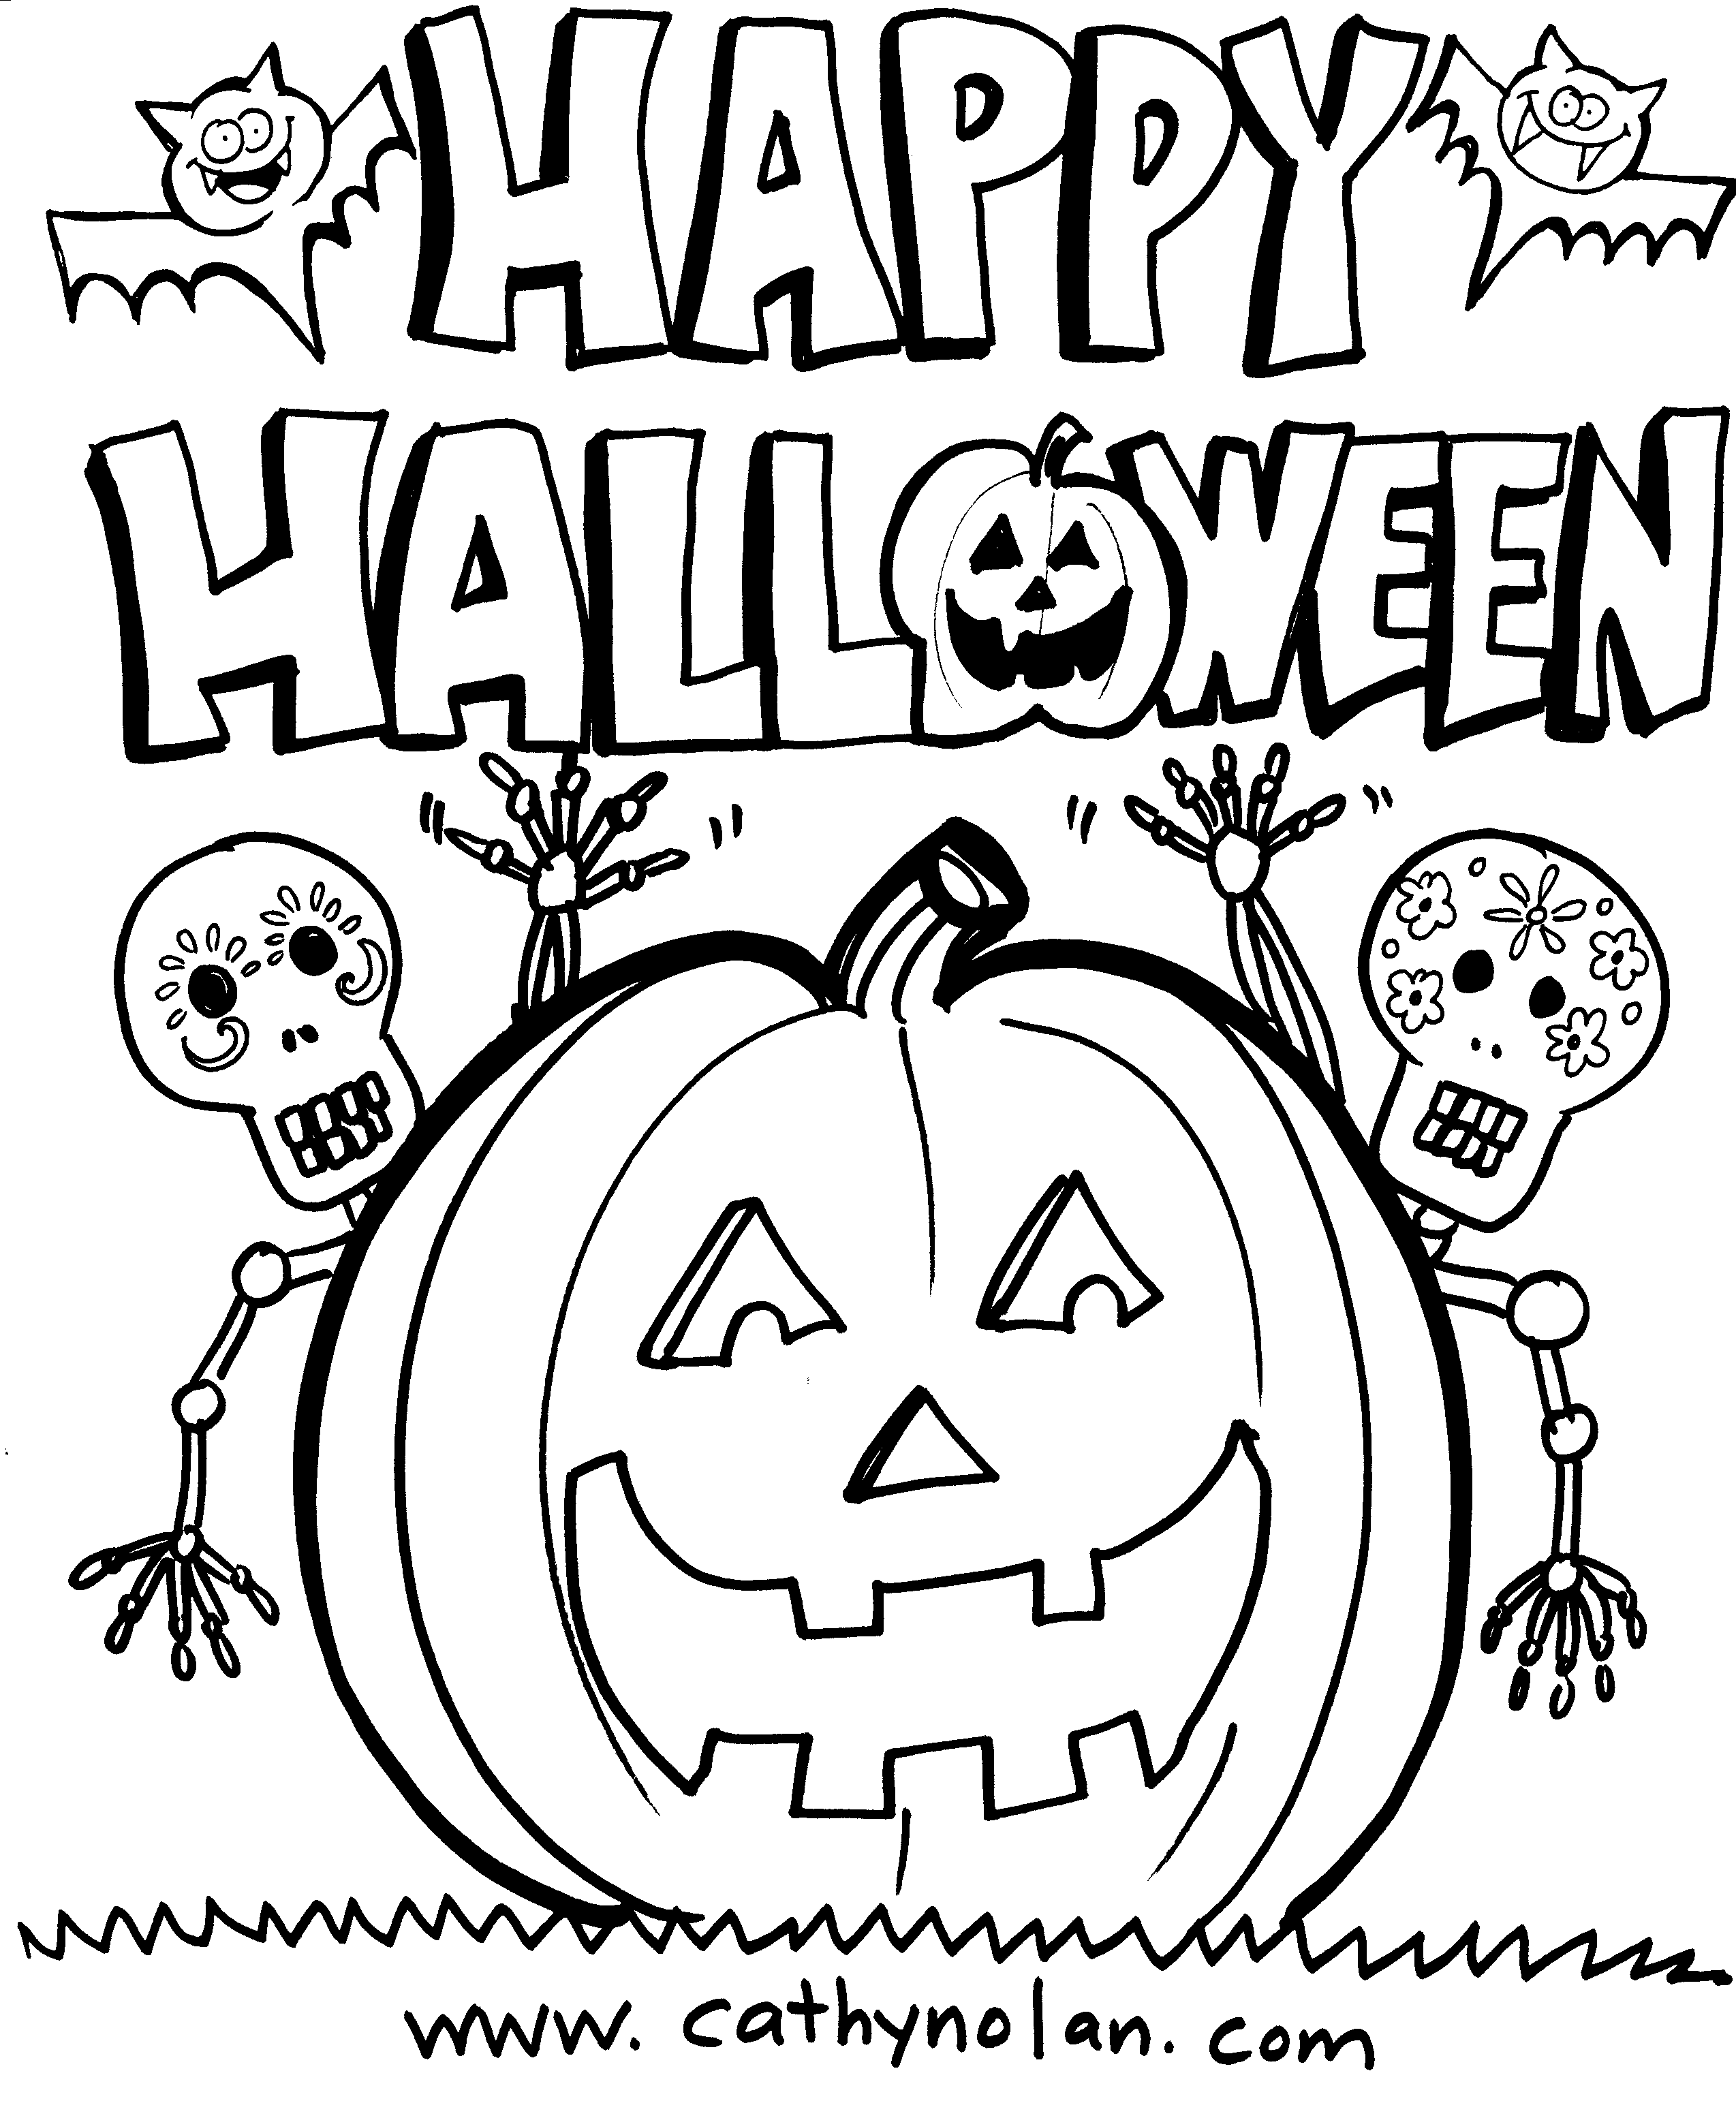 - Downloadable Happy Halloween Coloring Sheets For The Kids! CATHY